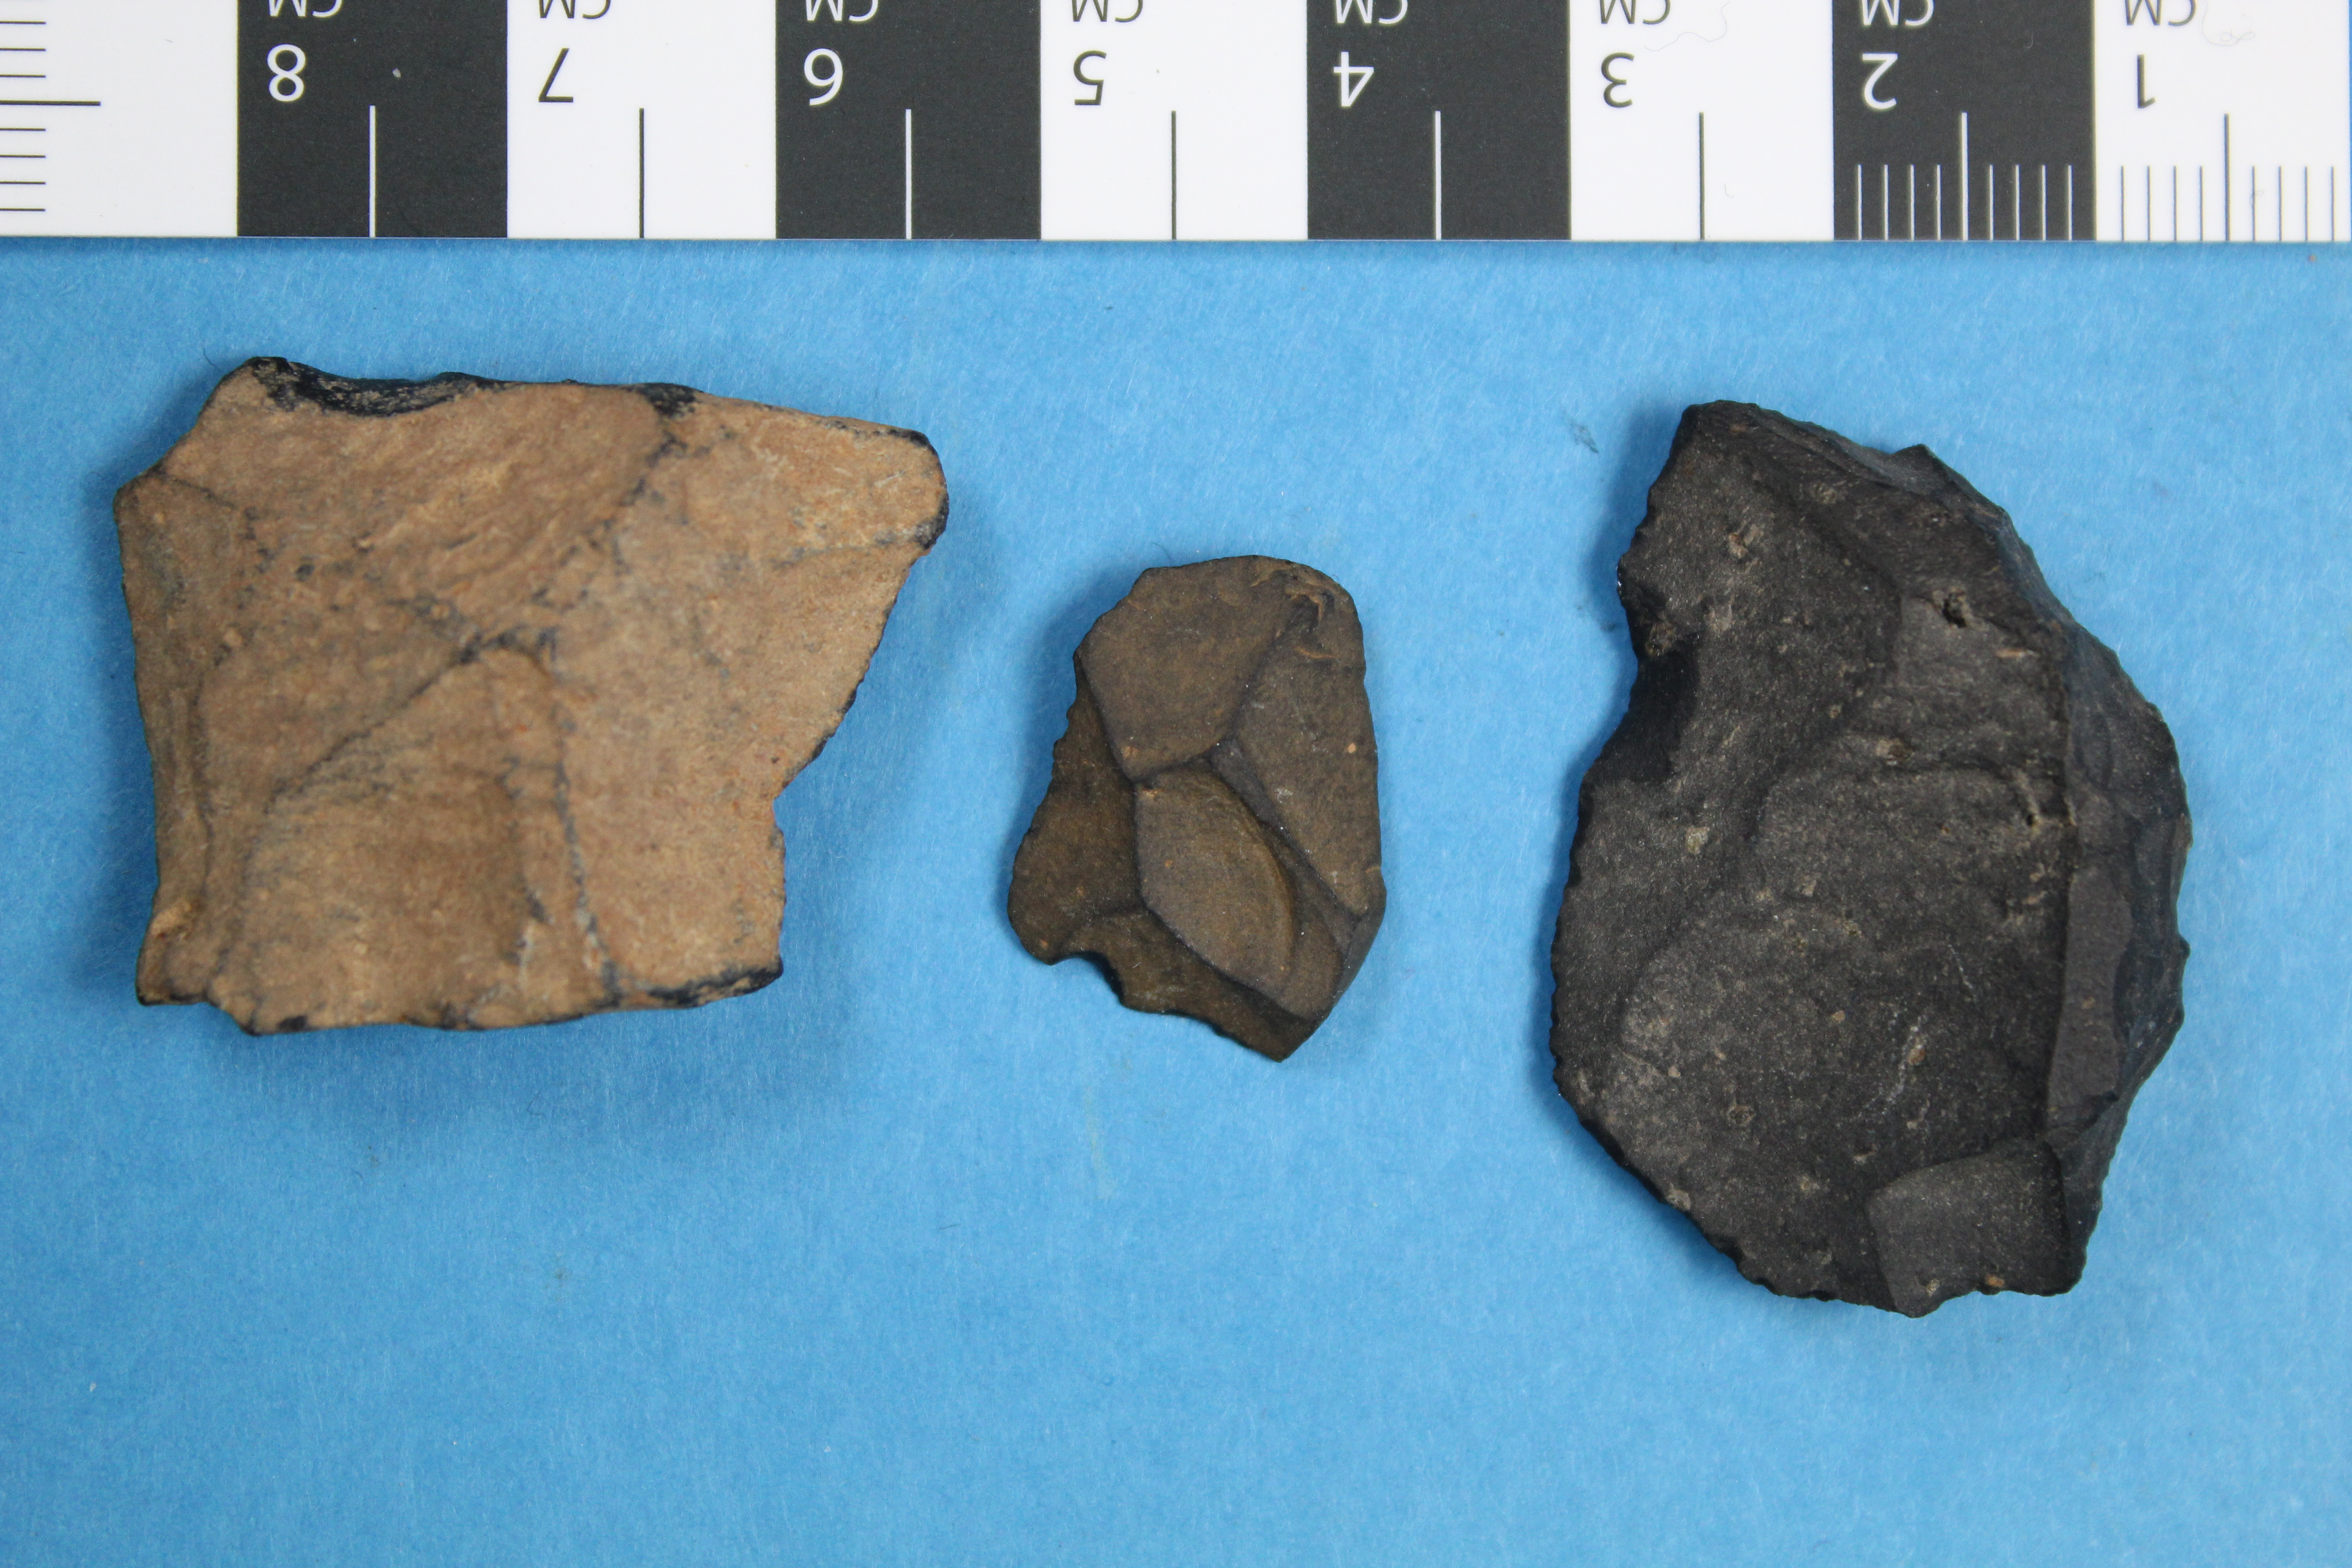 tachylite flaked artefacts.jpg